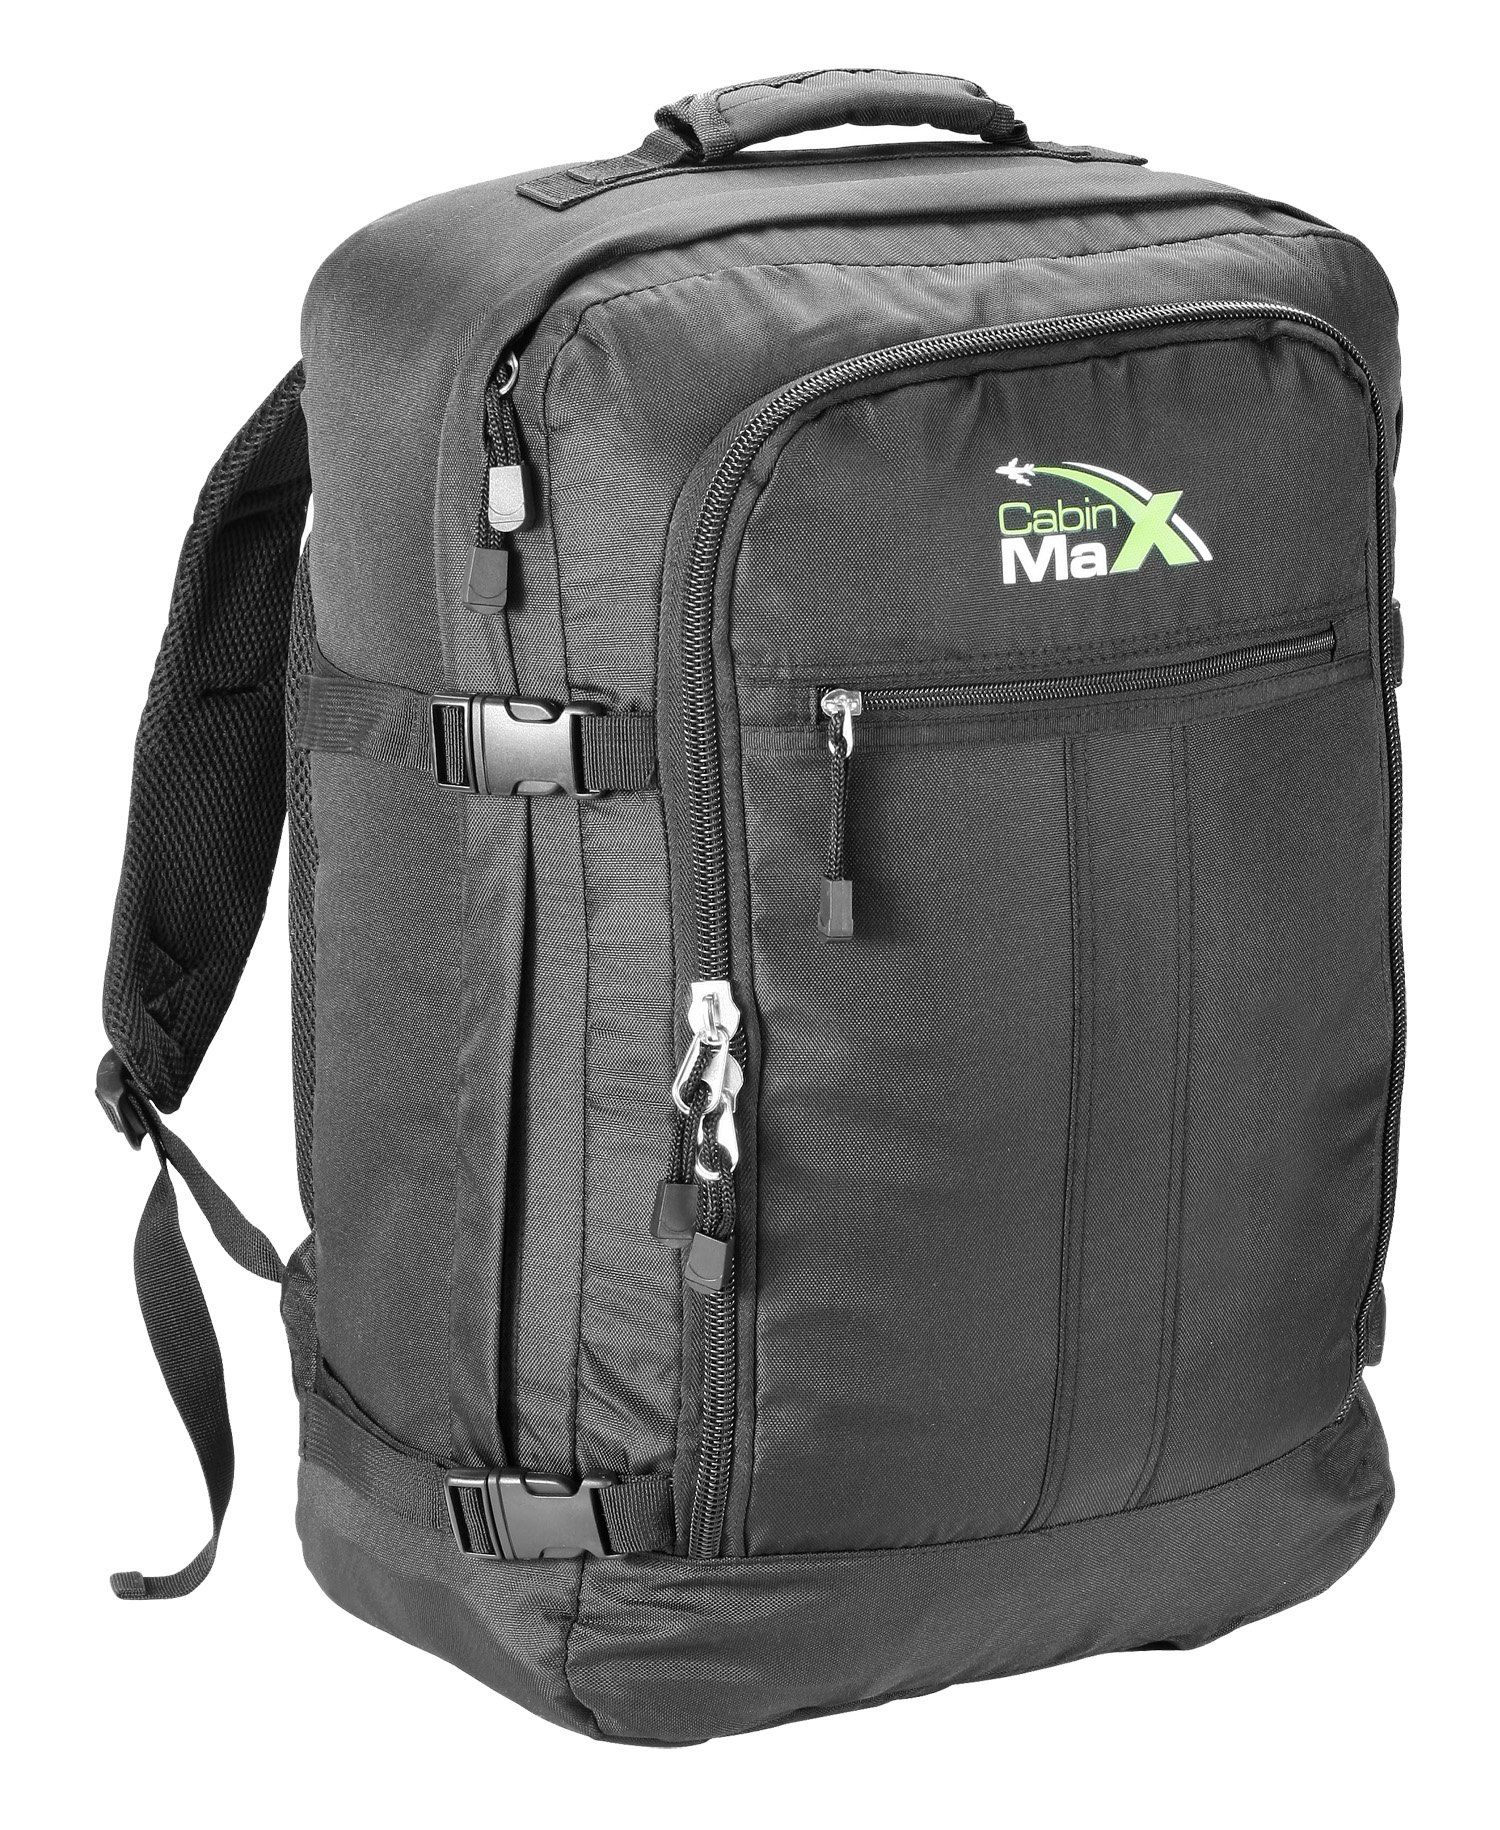 Cabin Max Backpack Flight Approved Carry On Bag Massive 44 litre Travel Hand Luggage 55x40x20 cm - Metz Black: Amazon.co.uk: Clothing  Fits in overhead compartment on Norwegian 669 grams.